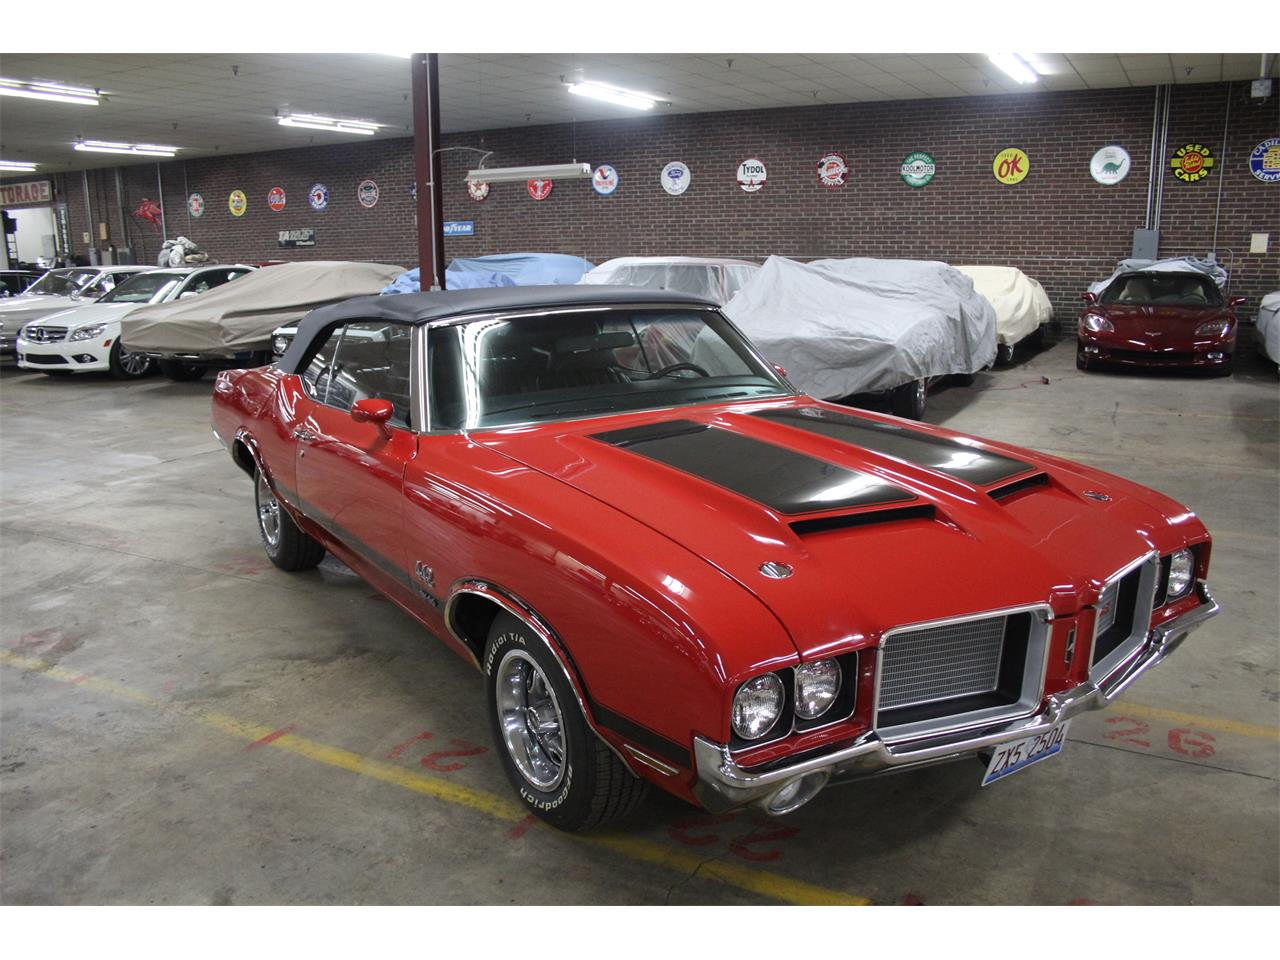 1972 Oldsmobile Cutlass (CC-1046230) for sale in LAKE ZURICH, Illinois